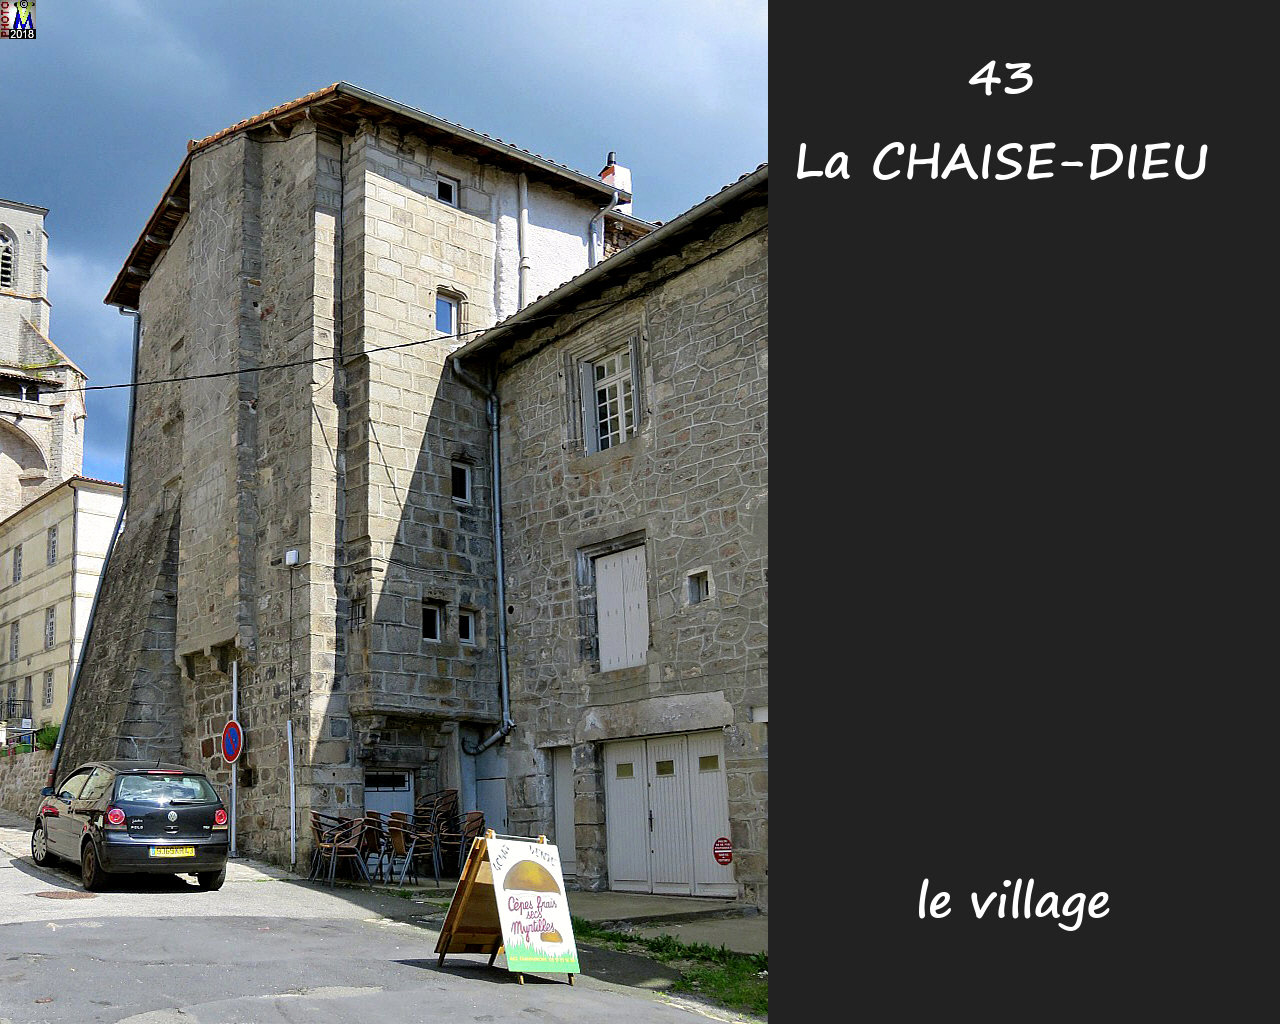 43CHAISE-DIEU_village_152.jpg